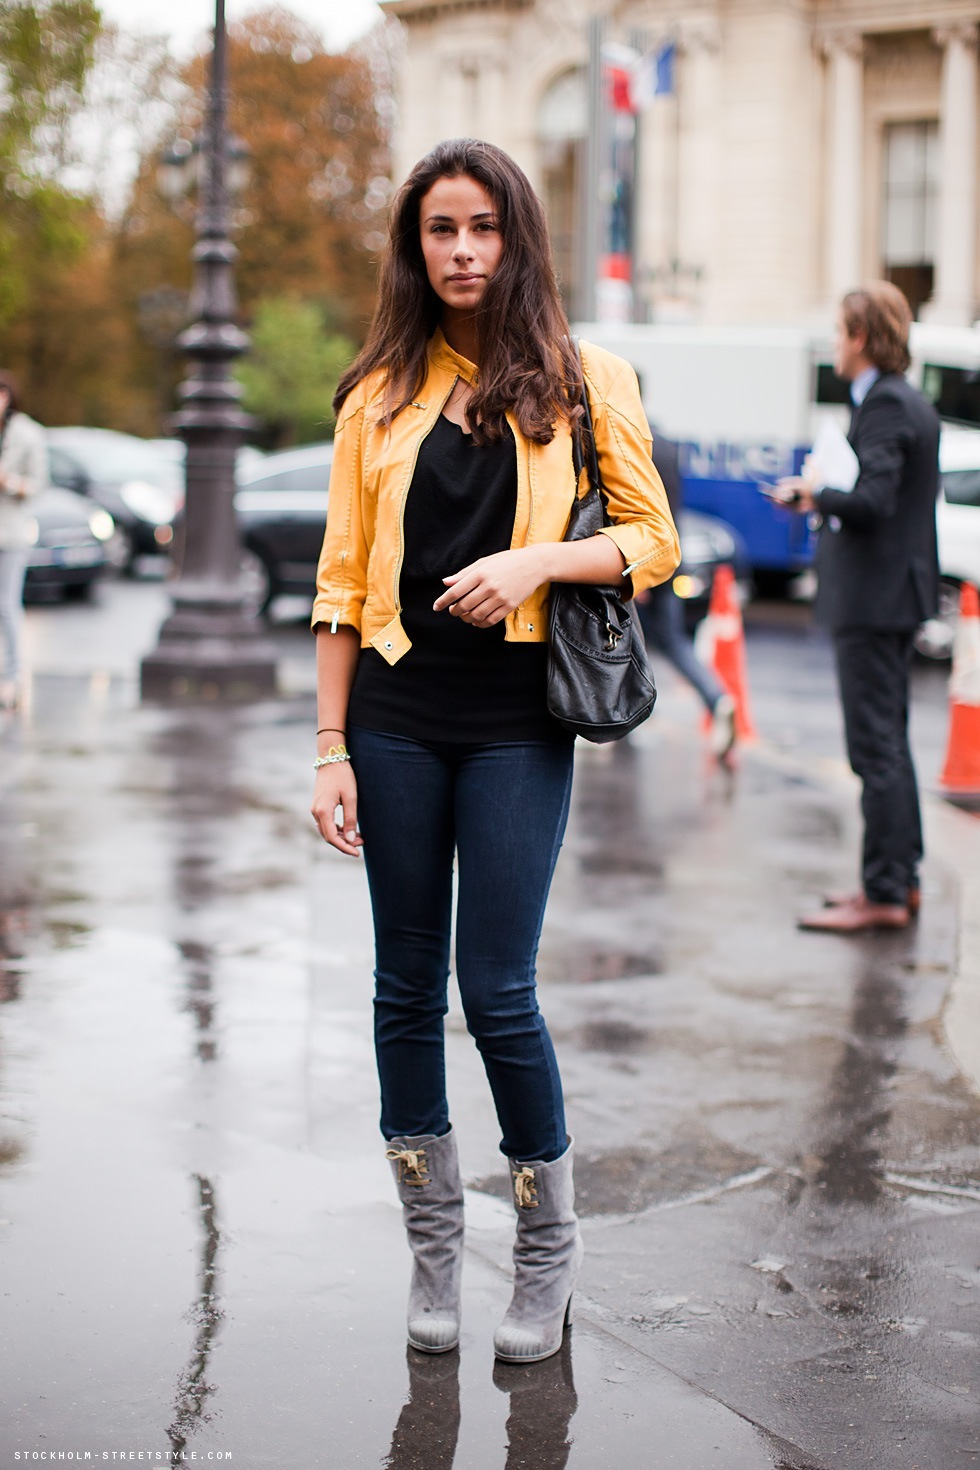 bag, boots, brunette, denim, fashion